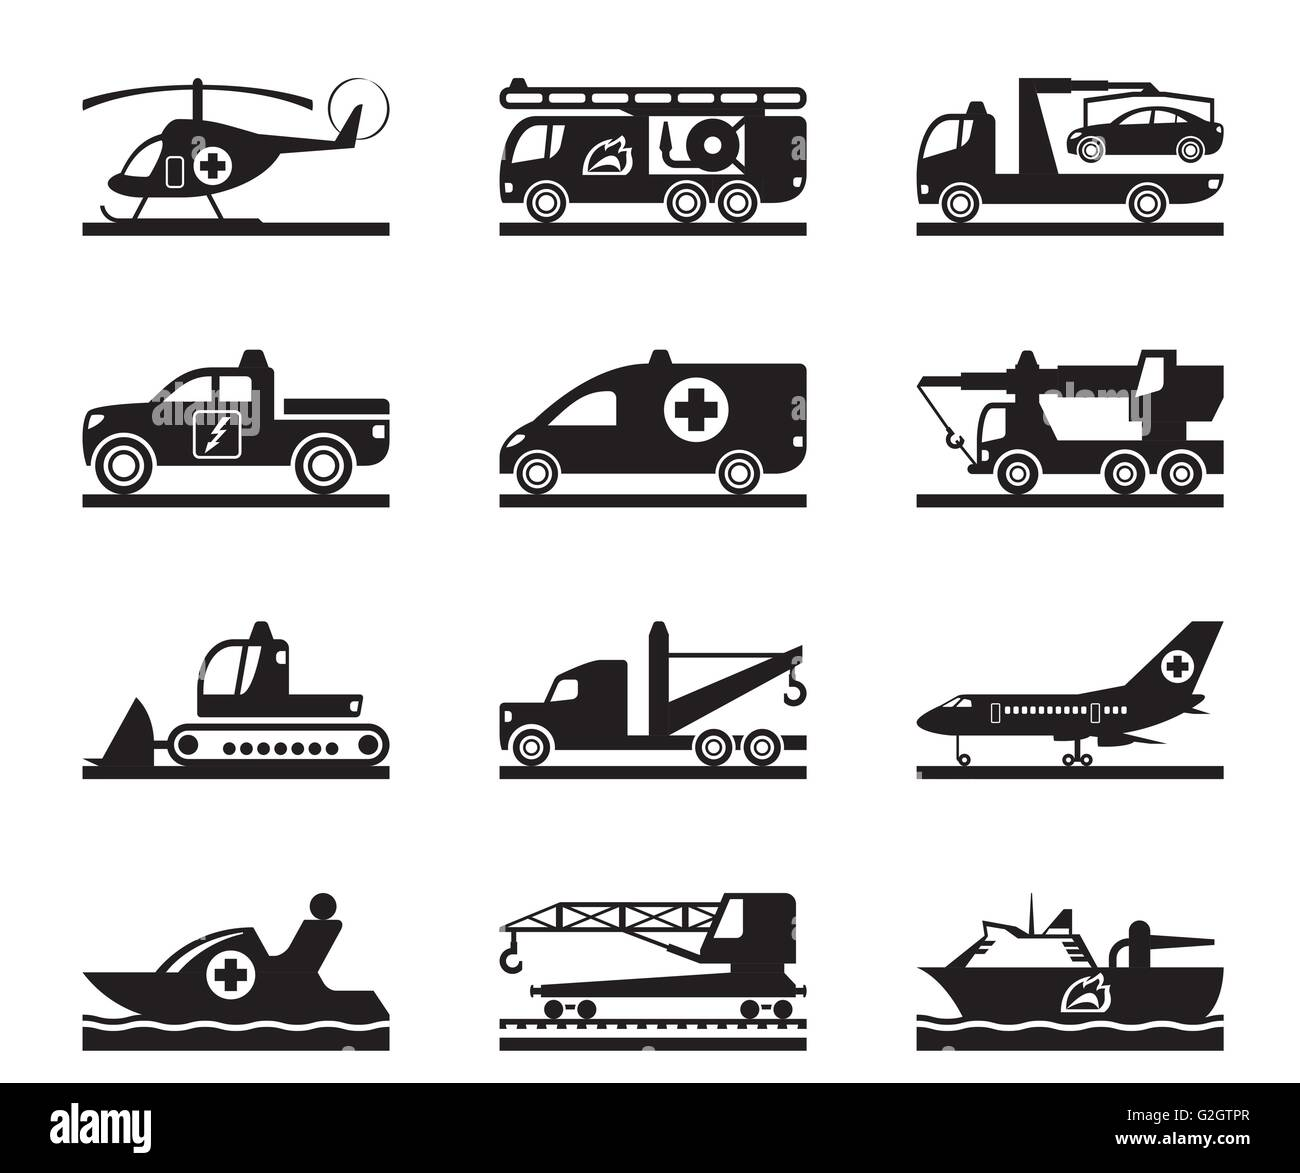 Vehicles for accidents, emergencies and natural disasters - vector illustration - Stock Image